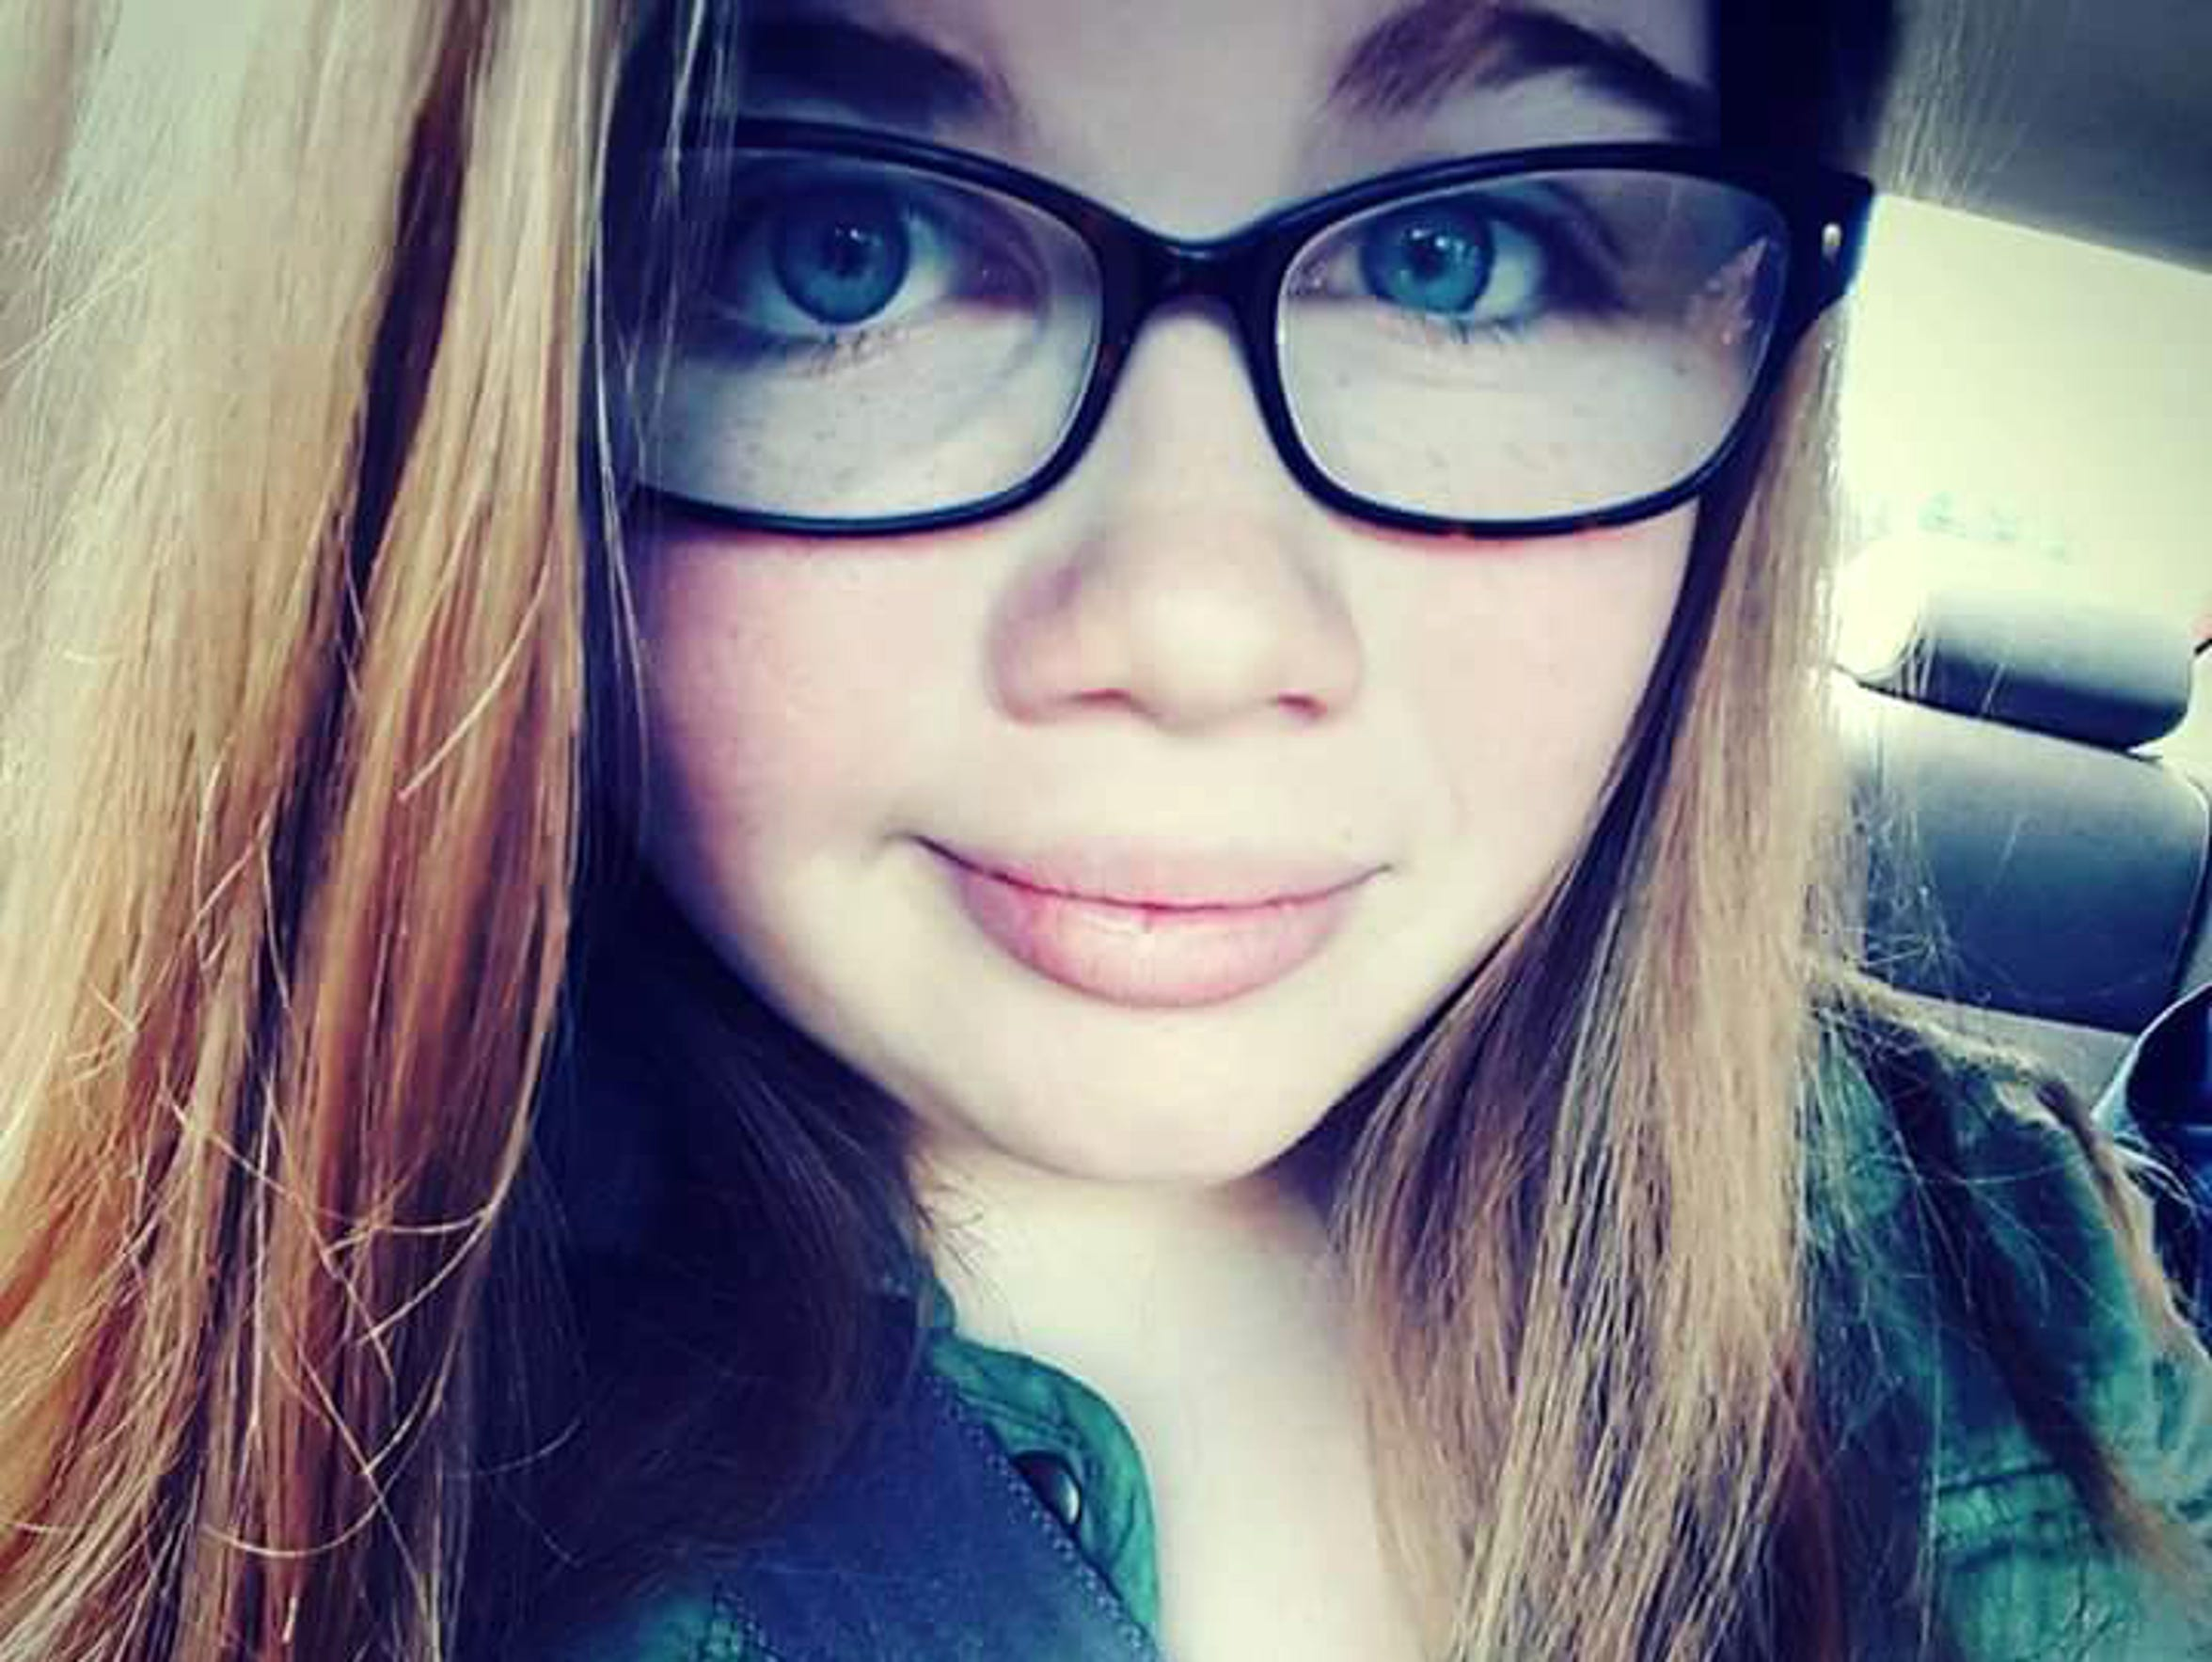 An undated photo of Katilynn Daniel, who died in 2016